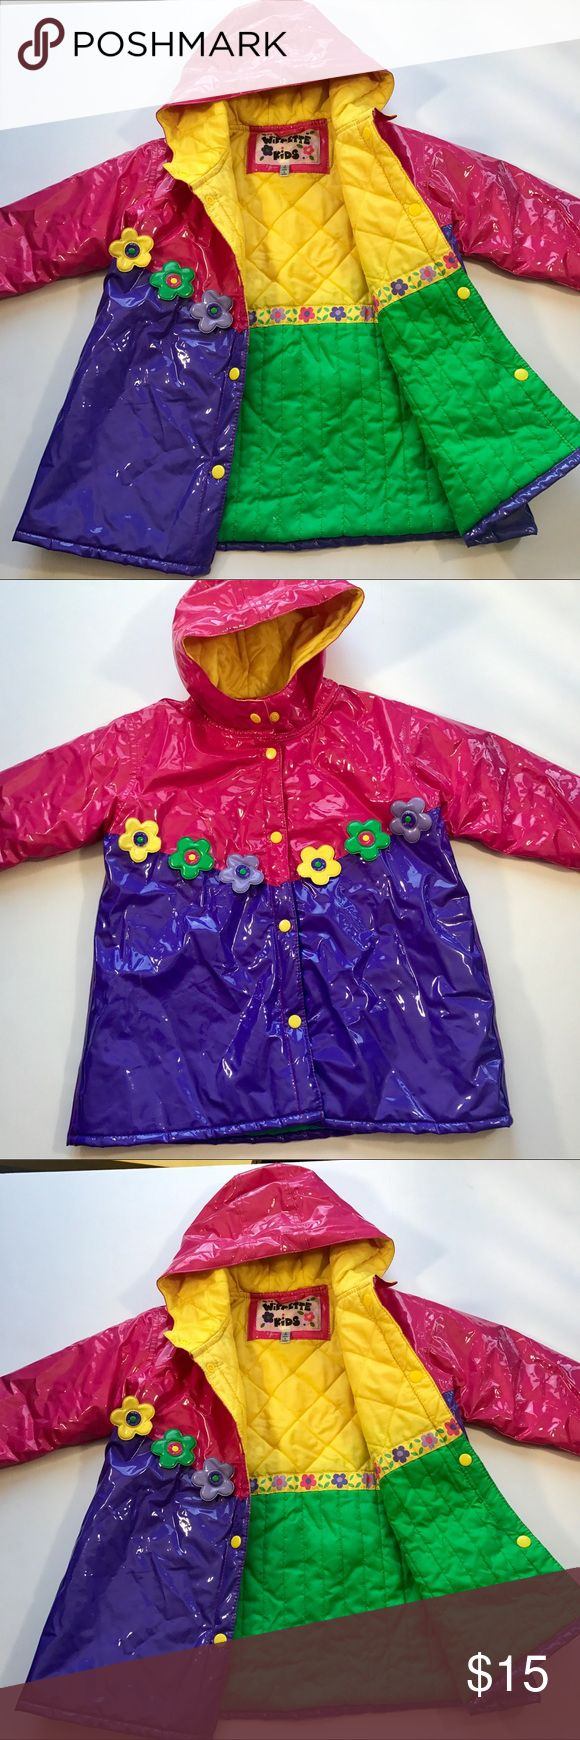 ‼️WIPPETTE KIDS RAIN JACKET‼️ Wipette Kids Rain Jacket  Super cute!  I was drawn to this at a boutique store in Portland Or. It's so vibrant and lovely for a rainy day. Very cheery!  Purple and pink w flowers. Has a good. It's a rain jacket...and is puffy and kinda shiny. The lining inside is just adorable.  Yellow and bright green w Floral trim! Really unique piece.  You little one will love it!  Size is kids Small or 4T  Length is 21' Pit to pit is just about 18' Thank you WIPPETTE KIDS…